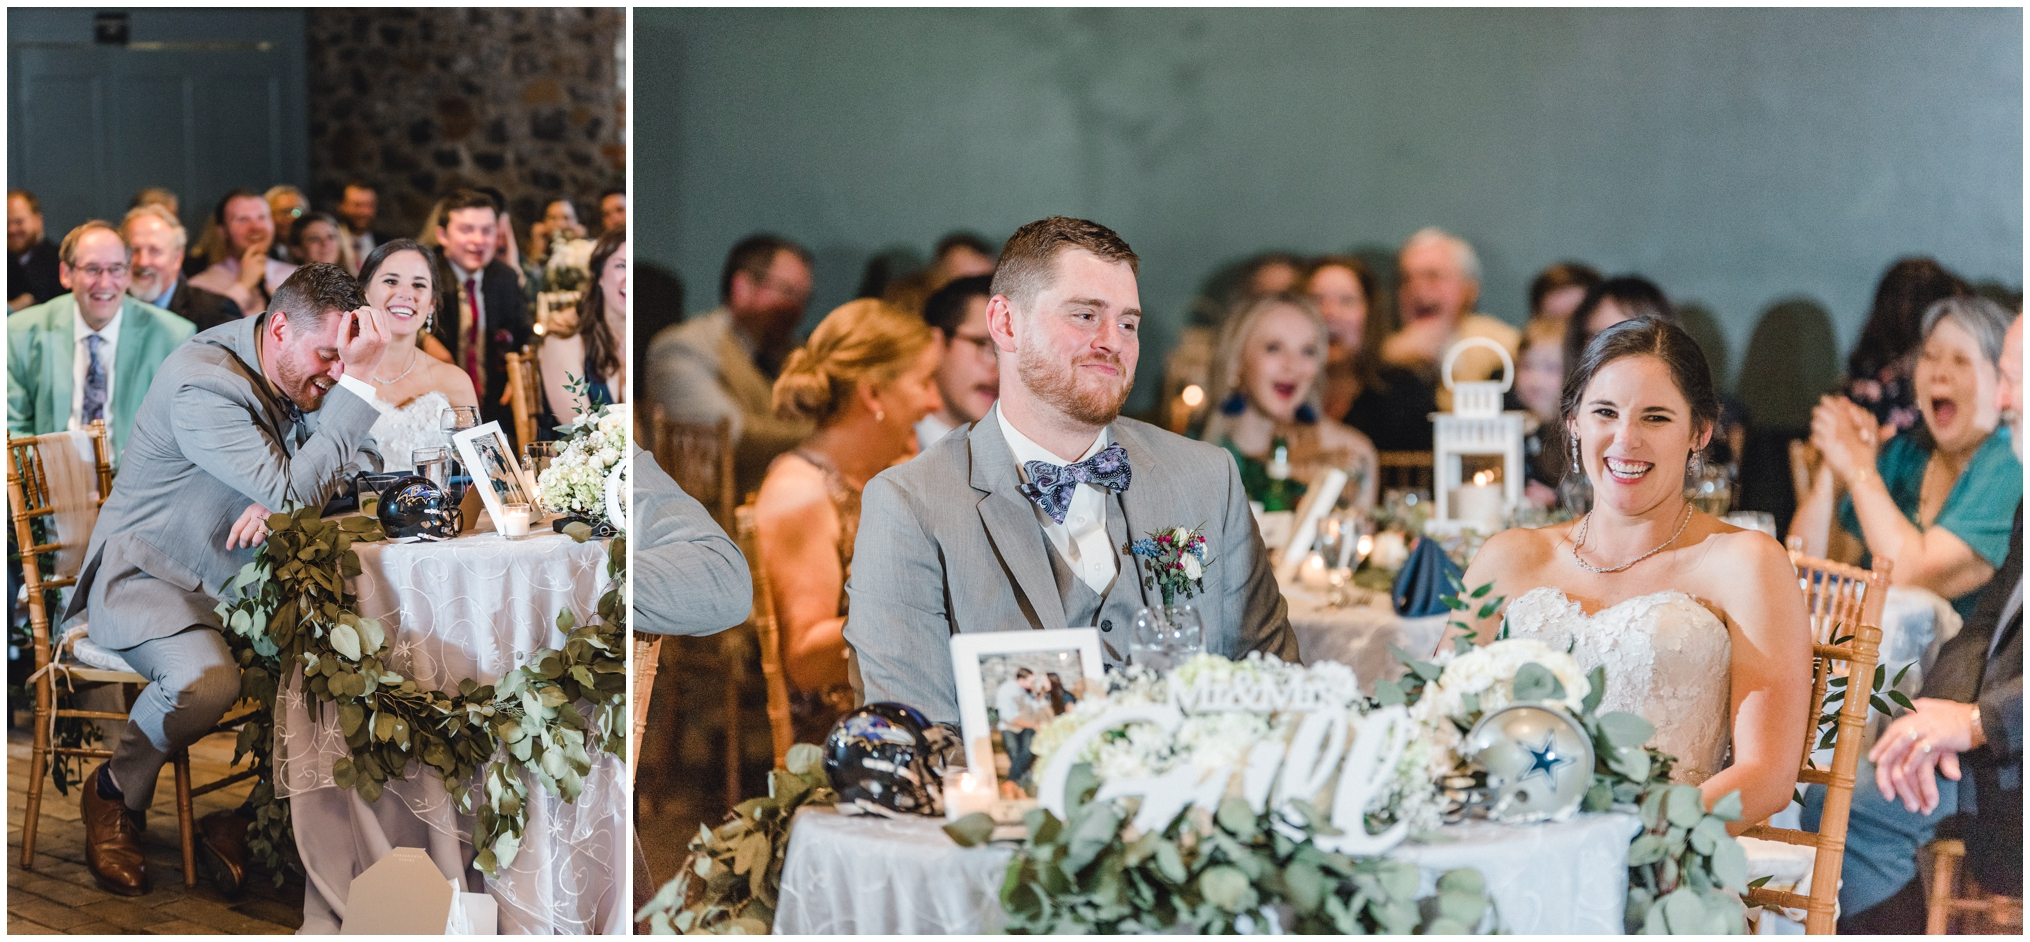 Krista Brackin Photography | April Wedding at The Carriage House at Rockwood Park_0111.jpg